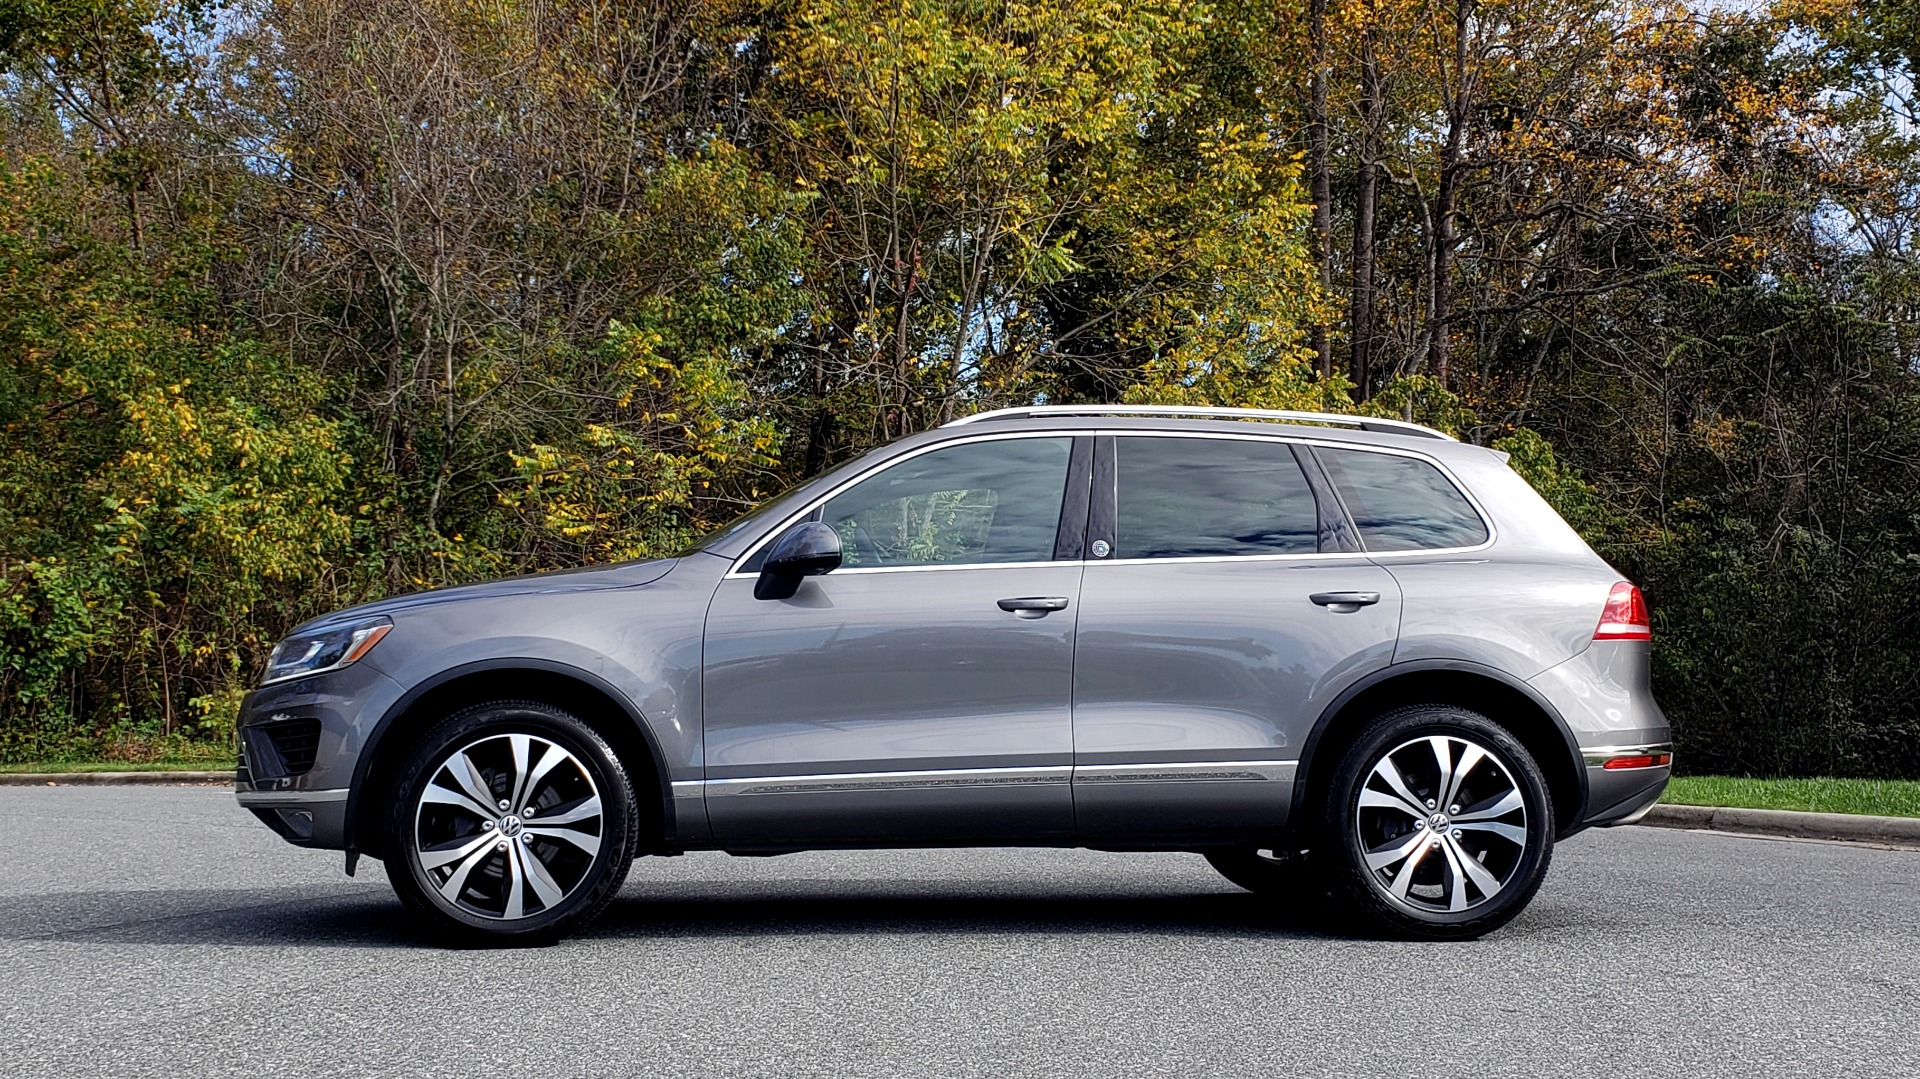 Used 2017 Volkswagen TOUAREG V6 WOLFSBURG EDITION / NAV / PANO-ROOF / ACC / REARVIEW for sale Sold at Formula Imports in Charlotte NC 28227 3